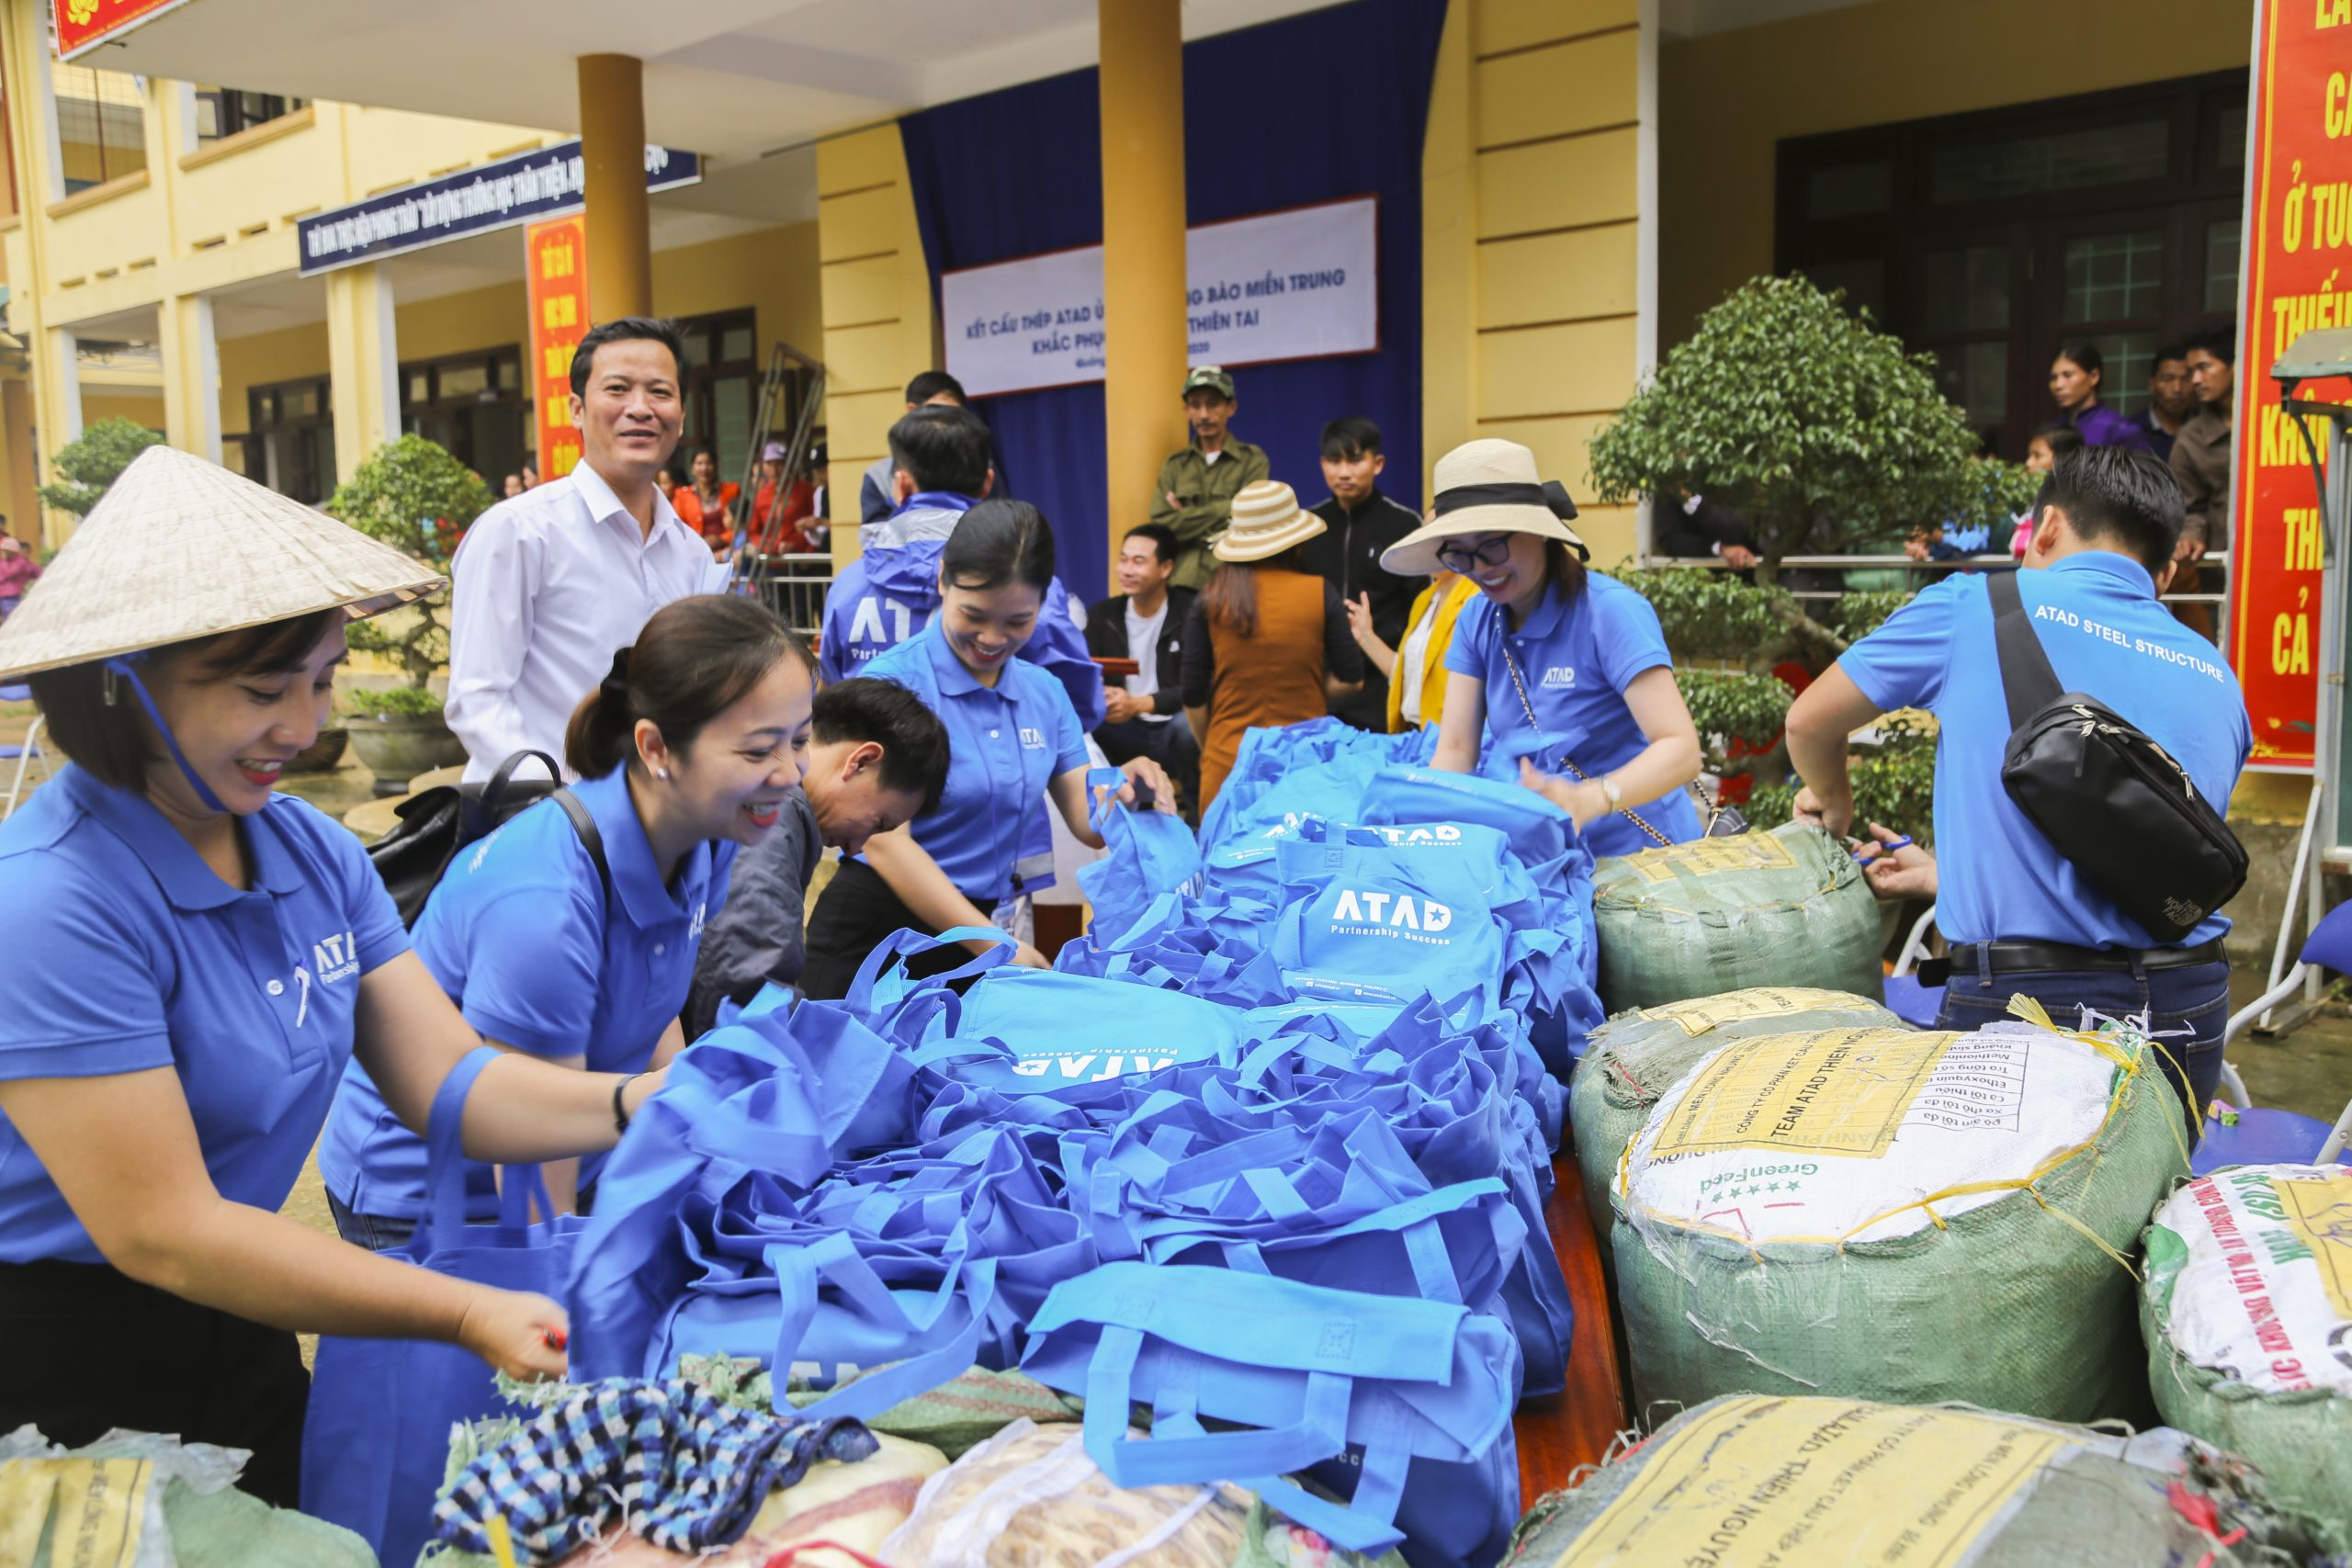 ATAD members sharing difficulties with people affected by flooding in Quang Binh province